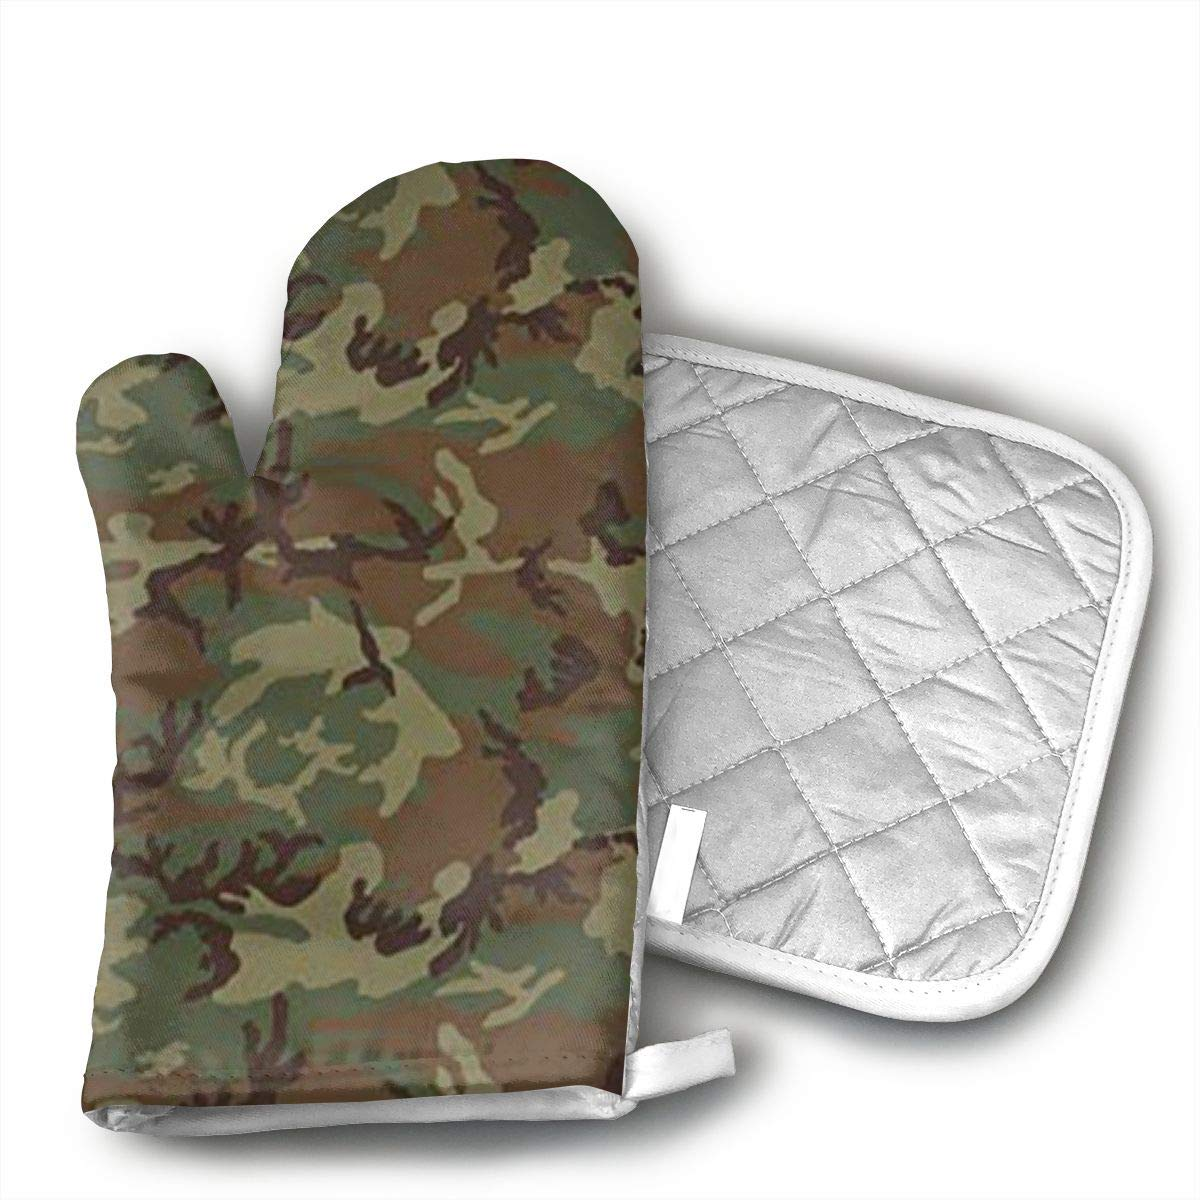 Wiqo9 Woodland Universal Camo Oven Mitts and Pot Holders Kitchen Mitten Cooking Gloves,Cooking, Baking, BBQ.